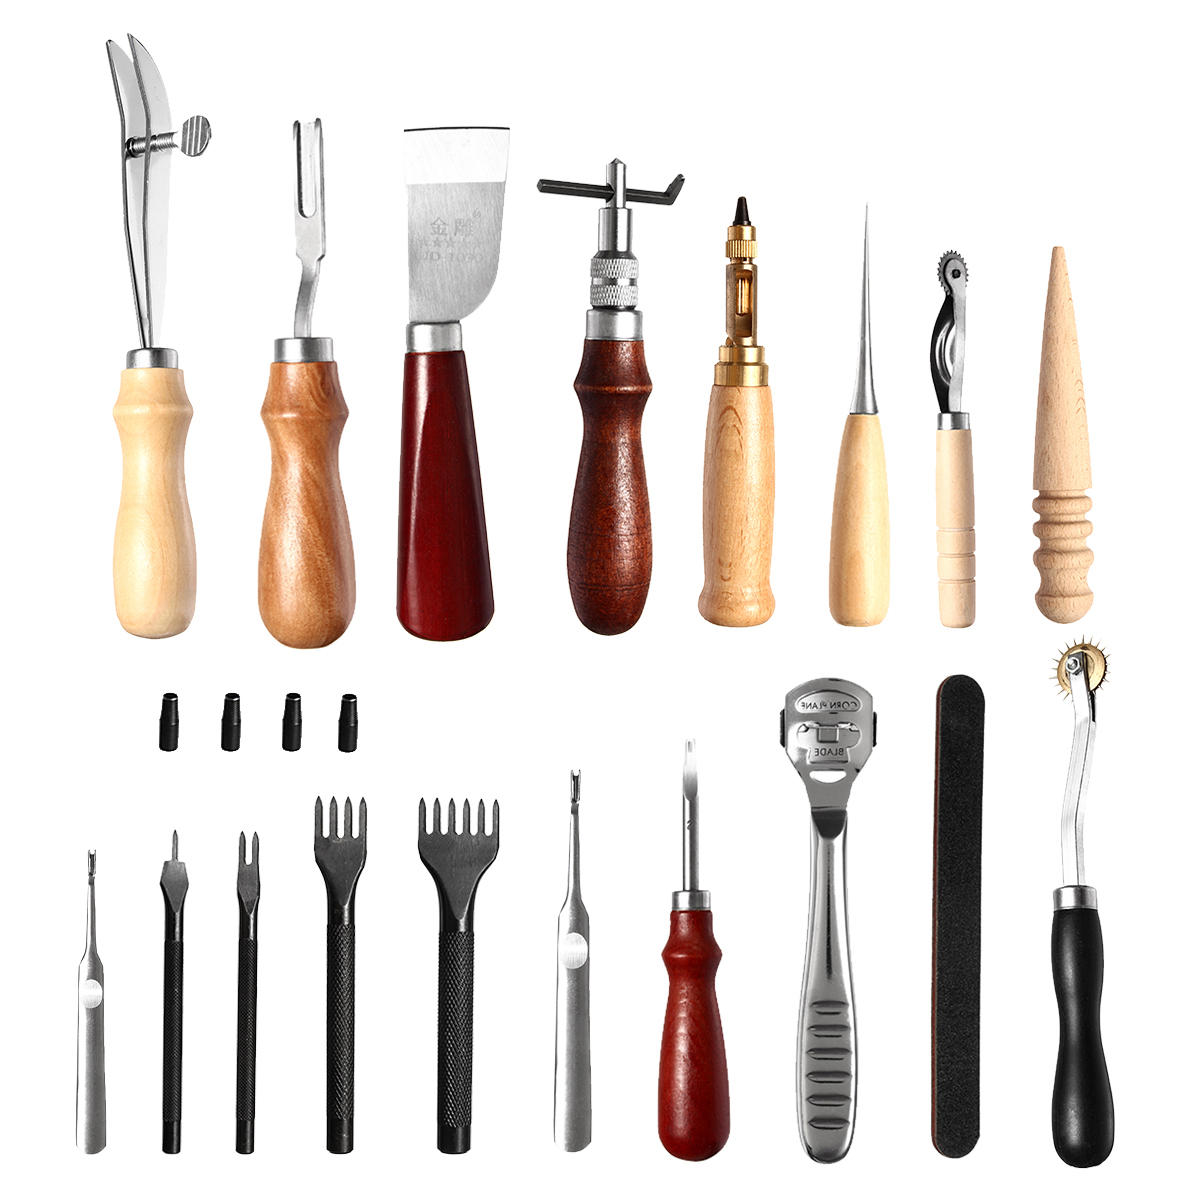 24 Pcs Leather Craft Tools Kit Hand Sewing Stitching Punch Carving Work Saddle - 1